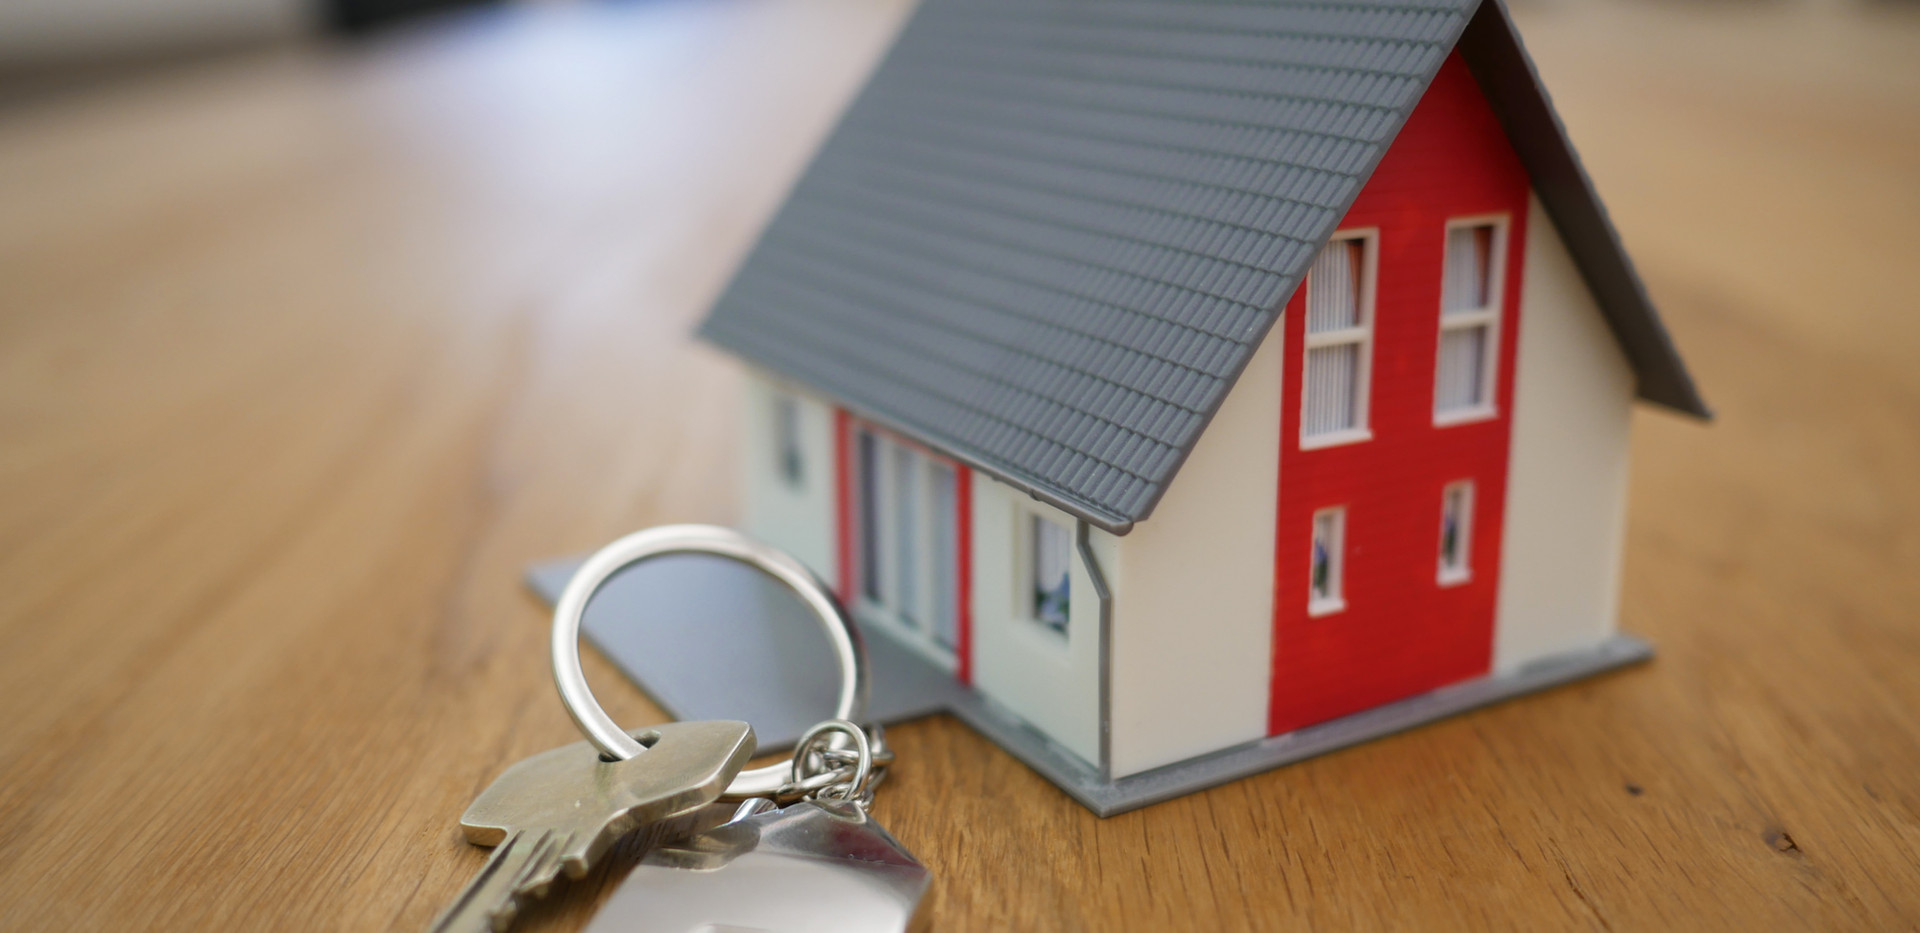 All real estate services are available